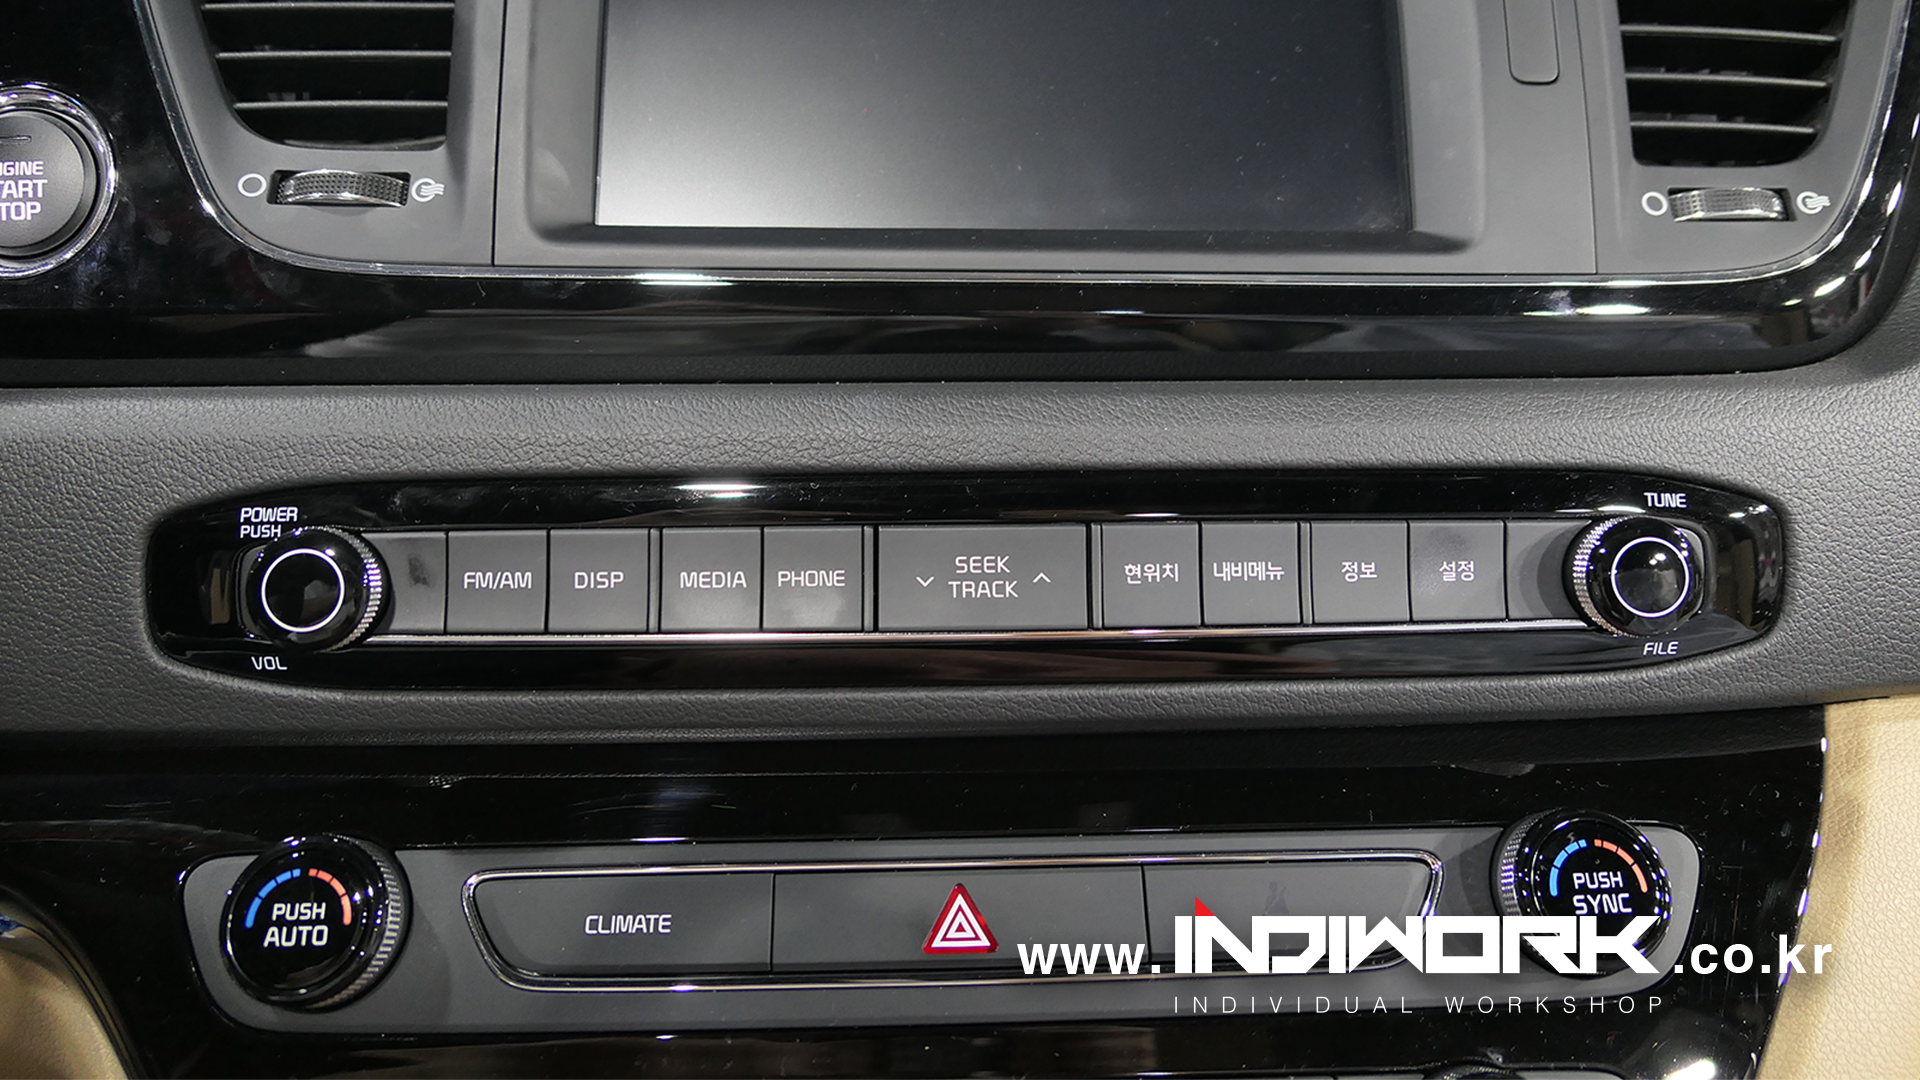 M2C-100IW Android system for 2017 KIA Carnival | INDIWORK